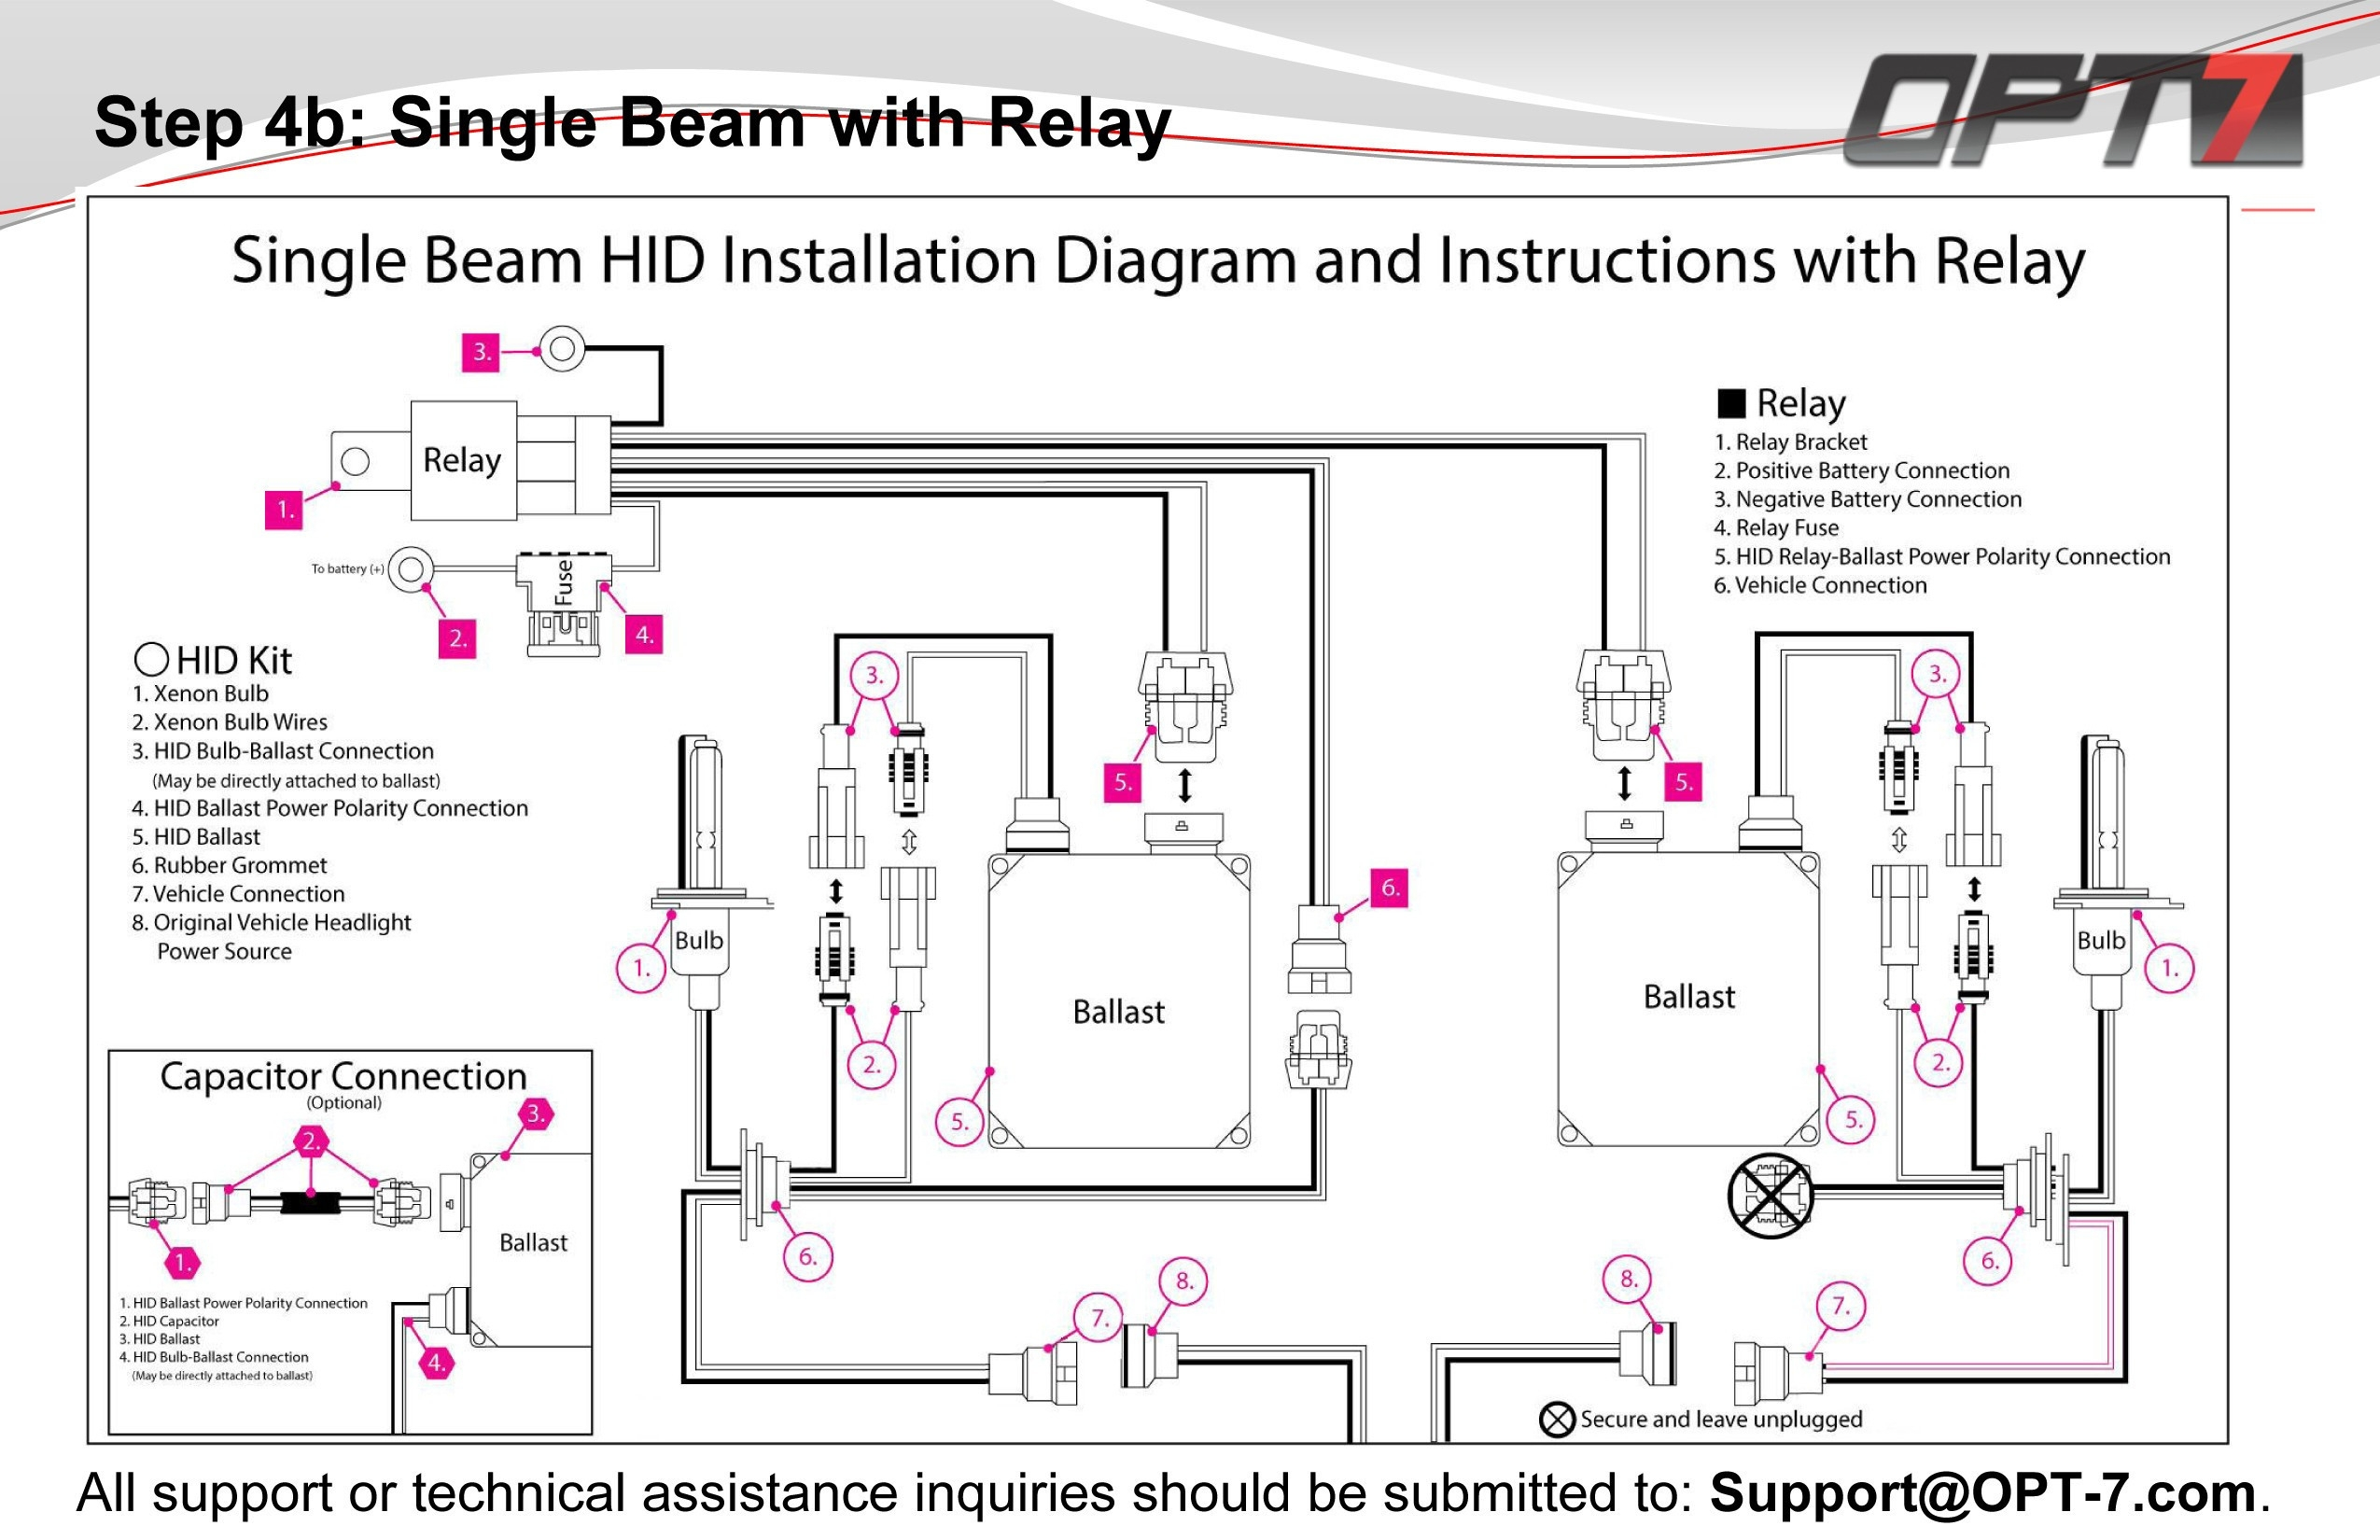 sauer danfoss joystick wiring diagram Download-Hid Wiring Diagram with Relay Sample H1 Bent Axis Variable Displacement Motors Size Sauer Danfoss 11-q